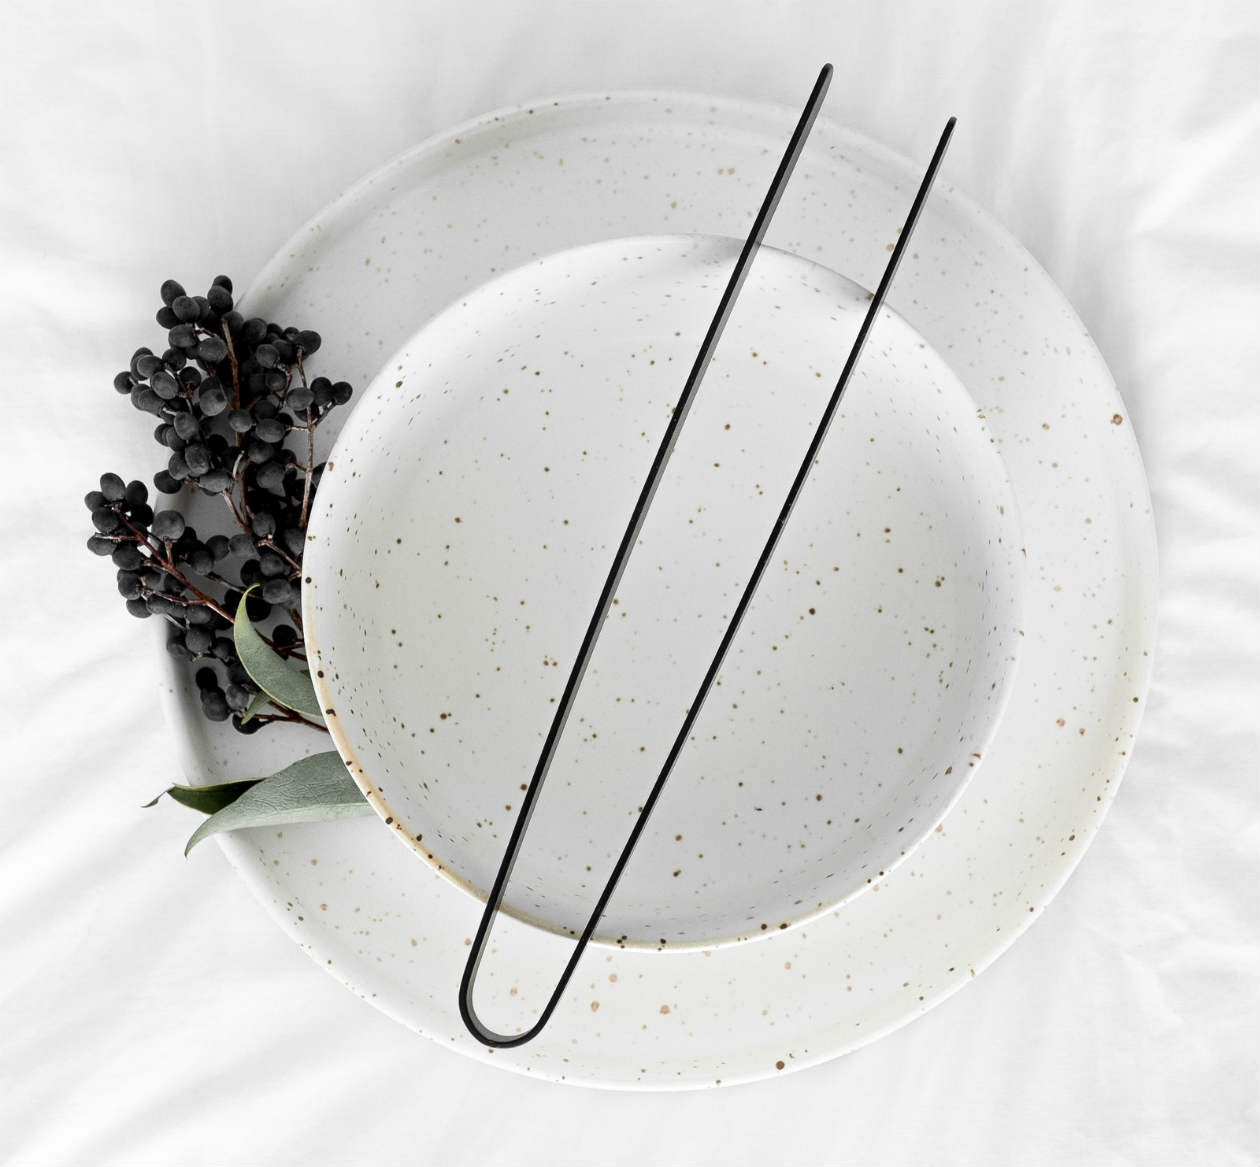 ceramic plate and kitchen tongs